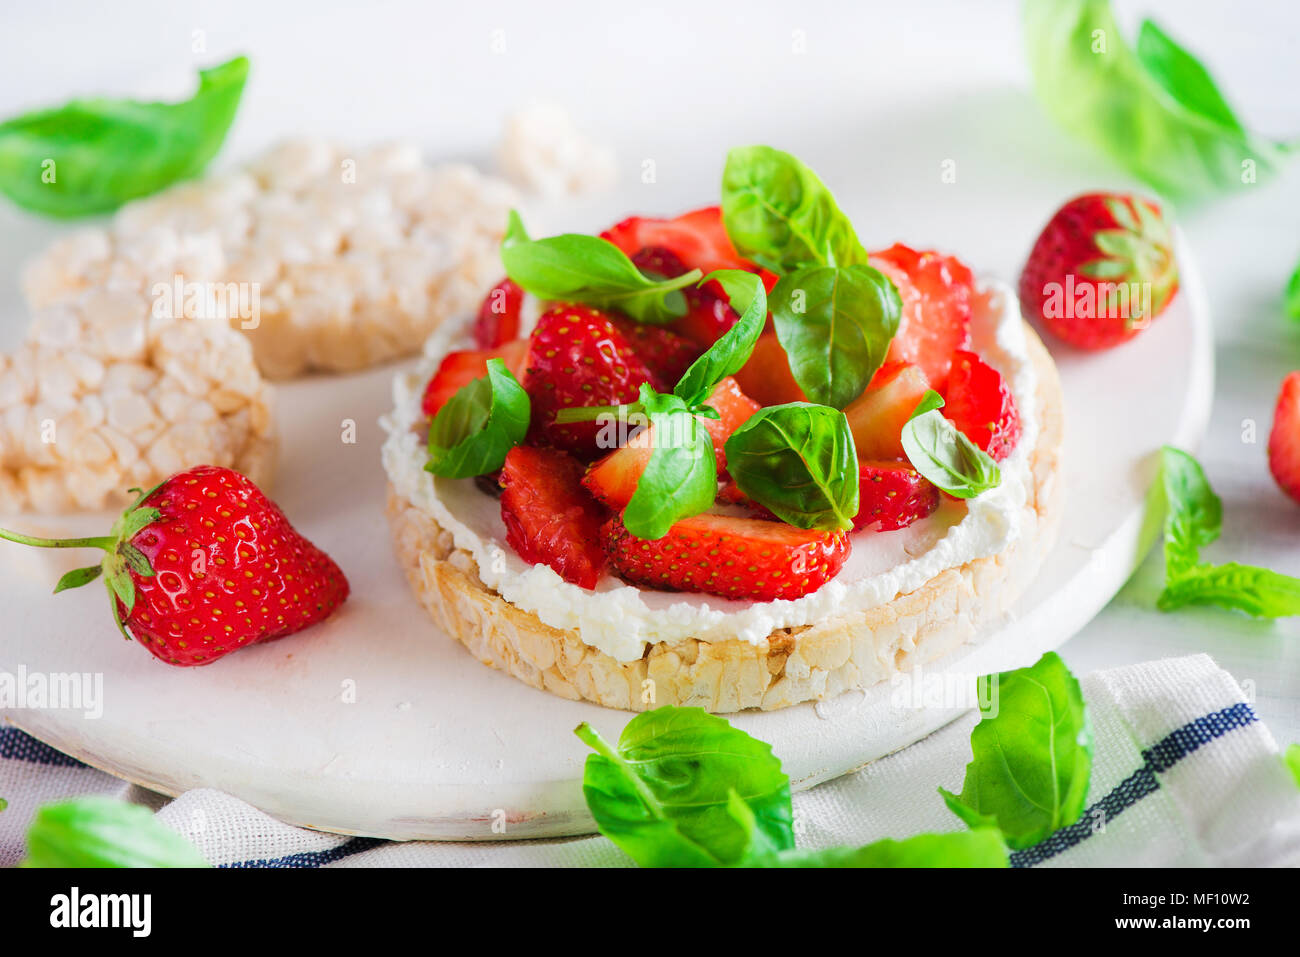 Healthy snack with crisp bread, fresh strawberries, goat cheese, and basil leaves. Easy appetizer recipe. - Stock Image